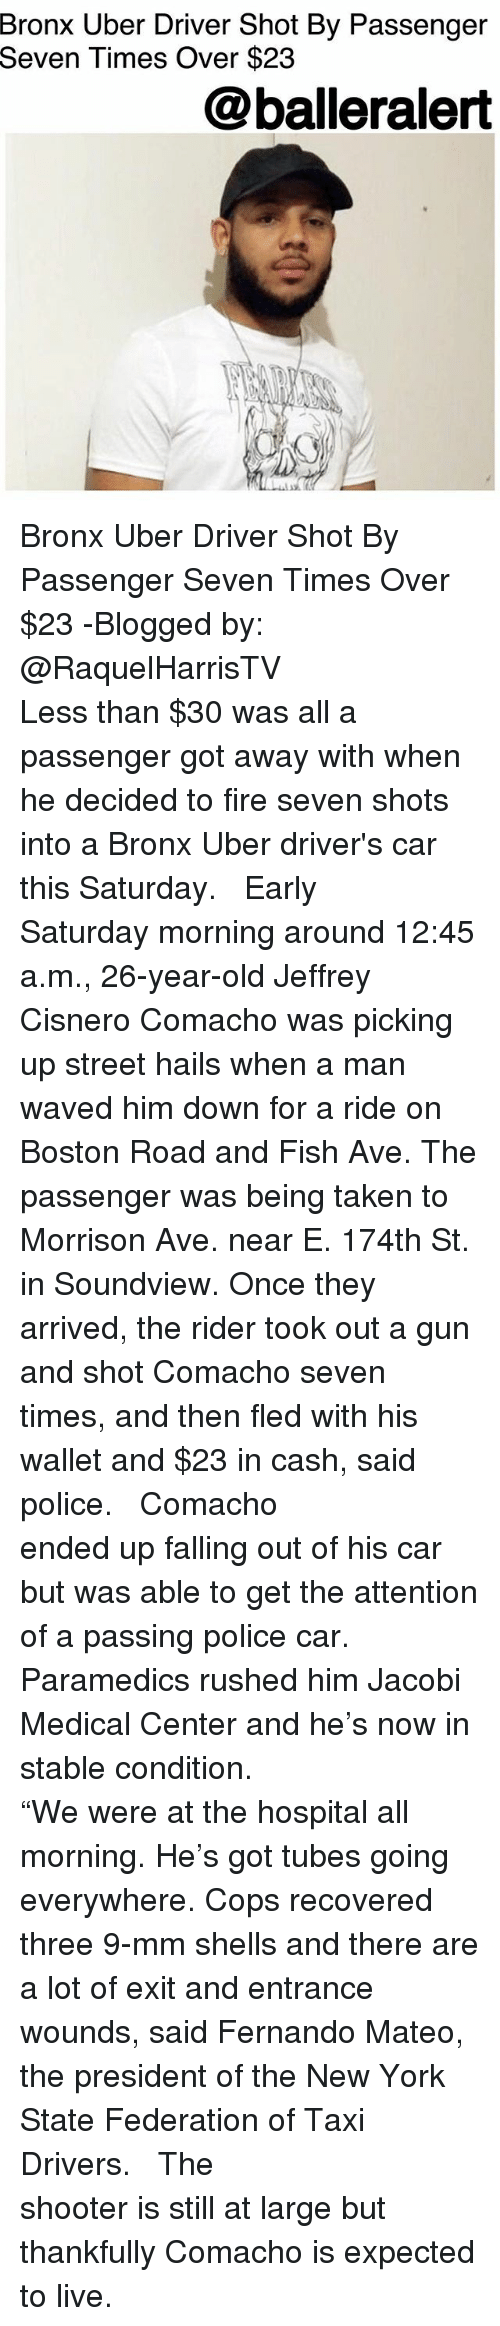 """federation: Bronx Uber Driver Shot By Passenger  Seven Times Over $23  @balleralert Bronx Uber Driver Shot By Passenger Seven Times Over $23 -Blogged by: @RaquelHarrisTV ⠀⠀⠀⠀⠀⠀⠀⠀⠀ ⠀⠀⠀⠀⠀⠀⠀⠀⠀ Less than $30 was all a passenger got away with when he decided to fire seven shots into a Bronx Uber driver's car this Saturday. ⠀⠀⠀⠀⠀⠀⠀⠀⠀ ⠀⠀⠀⠀⠀⠀⠀⠀⠀ Early Saturday morning around 12:45 a.m., 26-year-old Jeffrey Cisnero Comacho was picking up street hails when a man waved him down for a ride on Boston Road and Fish Ave. The passenger was being taken to Morrison Ave. near E. 174th St. in Soundview. Once they arrived, the rider took out a gun and shot Comacho seven times, and then fled with his wallet and $23 in cash, said police. ⠀⠀⠀⠀⠀⠀⠀⠀⠀ ⠀⠀⠀⠀⠀⠀⠀⠀⠀ Comacho ended up falling out of his car but was able to get the attention of a passing police car. Paramedics rushed him Jacobi Medical Center and he's now in stable condition. ⠀⠀⠀⠀⠀⠀⠀⠀⠀ ⠀⠀⠀⠀⠀⠀⠀⠀⠀ """"We were at the hospital all morning. He's got tubes going everywhere. Cops recovered three 9-mm shells and there are a lot of exit and entrance wounds, said Fernando Mateo, the president of the New York State Federation of Taxi Drivers. ⠀⠀⠀⠀⠀⠀⠀⠀⠀ ⠀⠀⠀⠀⠀⠀⠀⠀⠀ The shooter is still at large but thankfully Comacho is expected to live."""